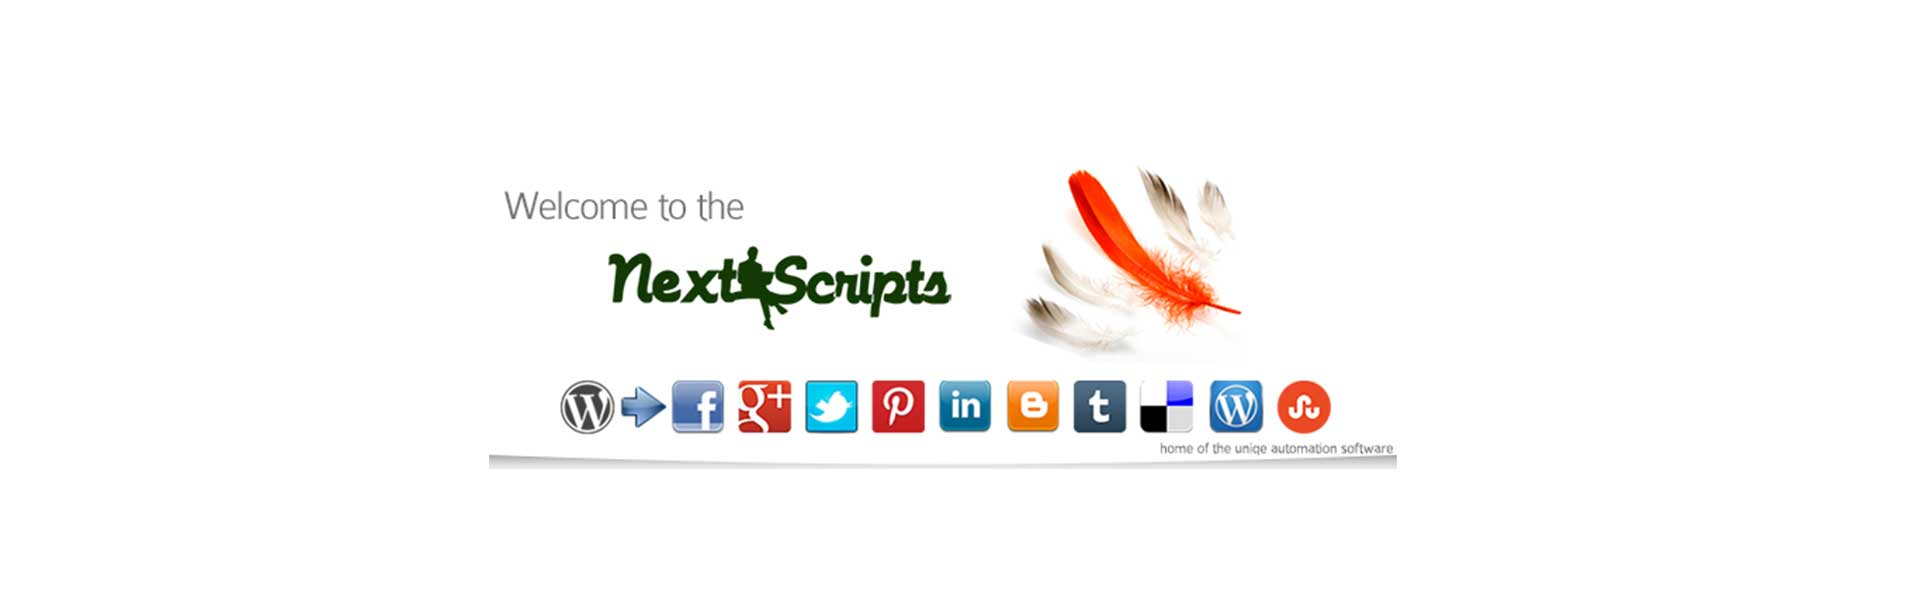 "NextScripts: Social Networks Auto-Poster Facebook ""Invalid Scopes: user_groups"""